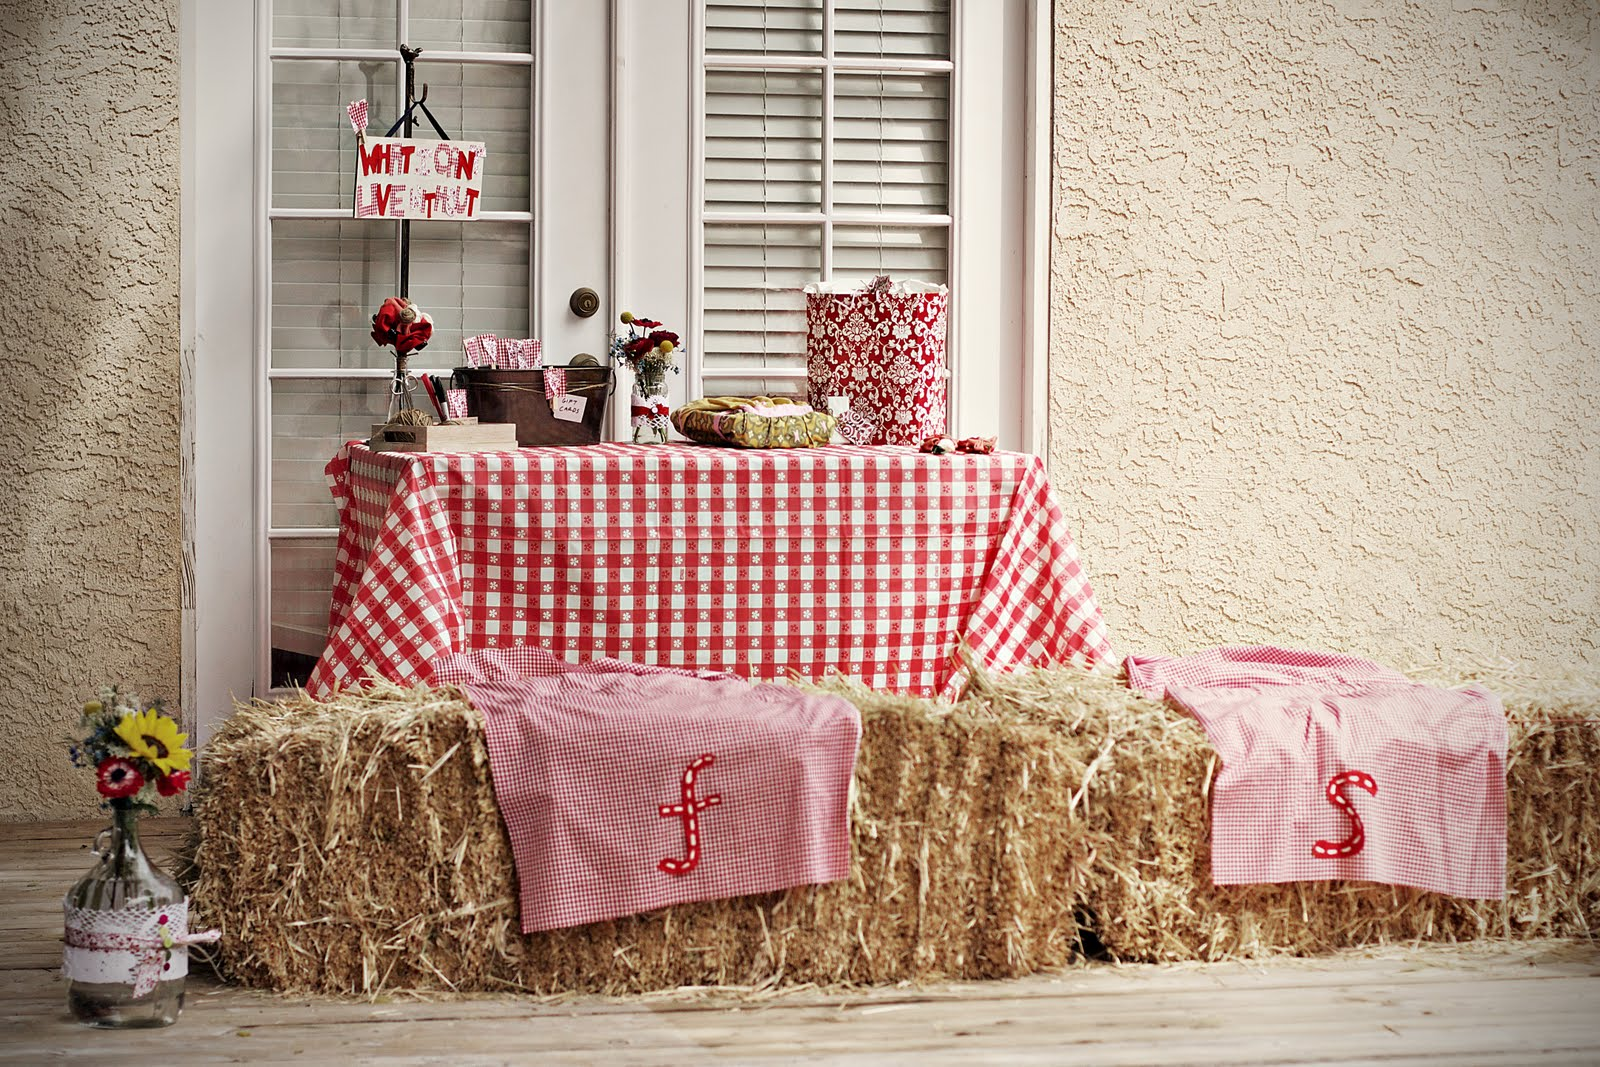 Creative ideas backyard bbq wedding shower for Decorating ideas for outdoor engagement party